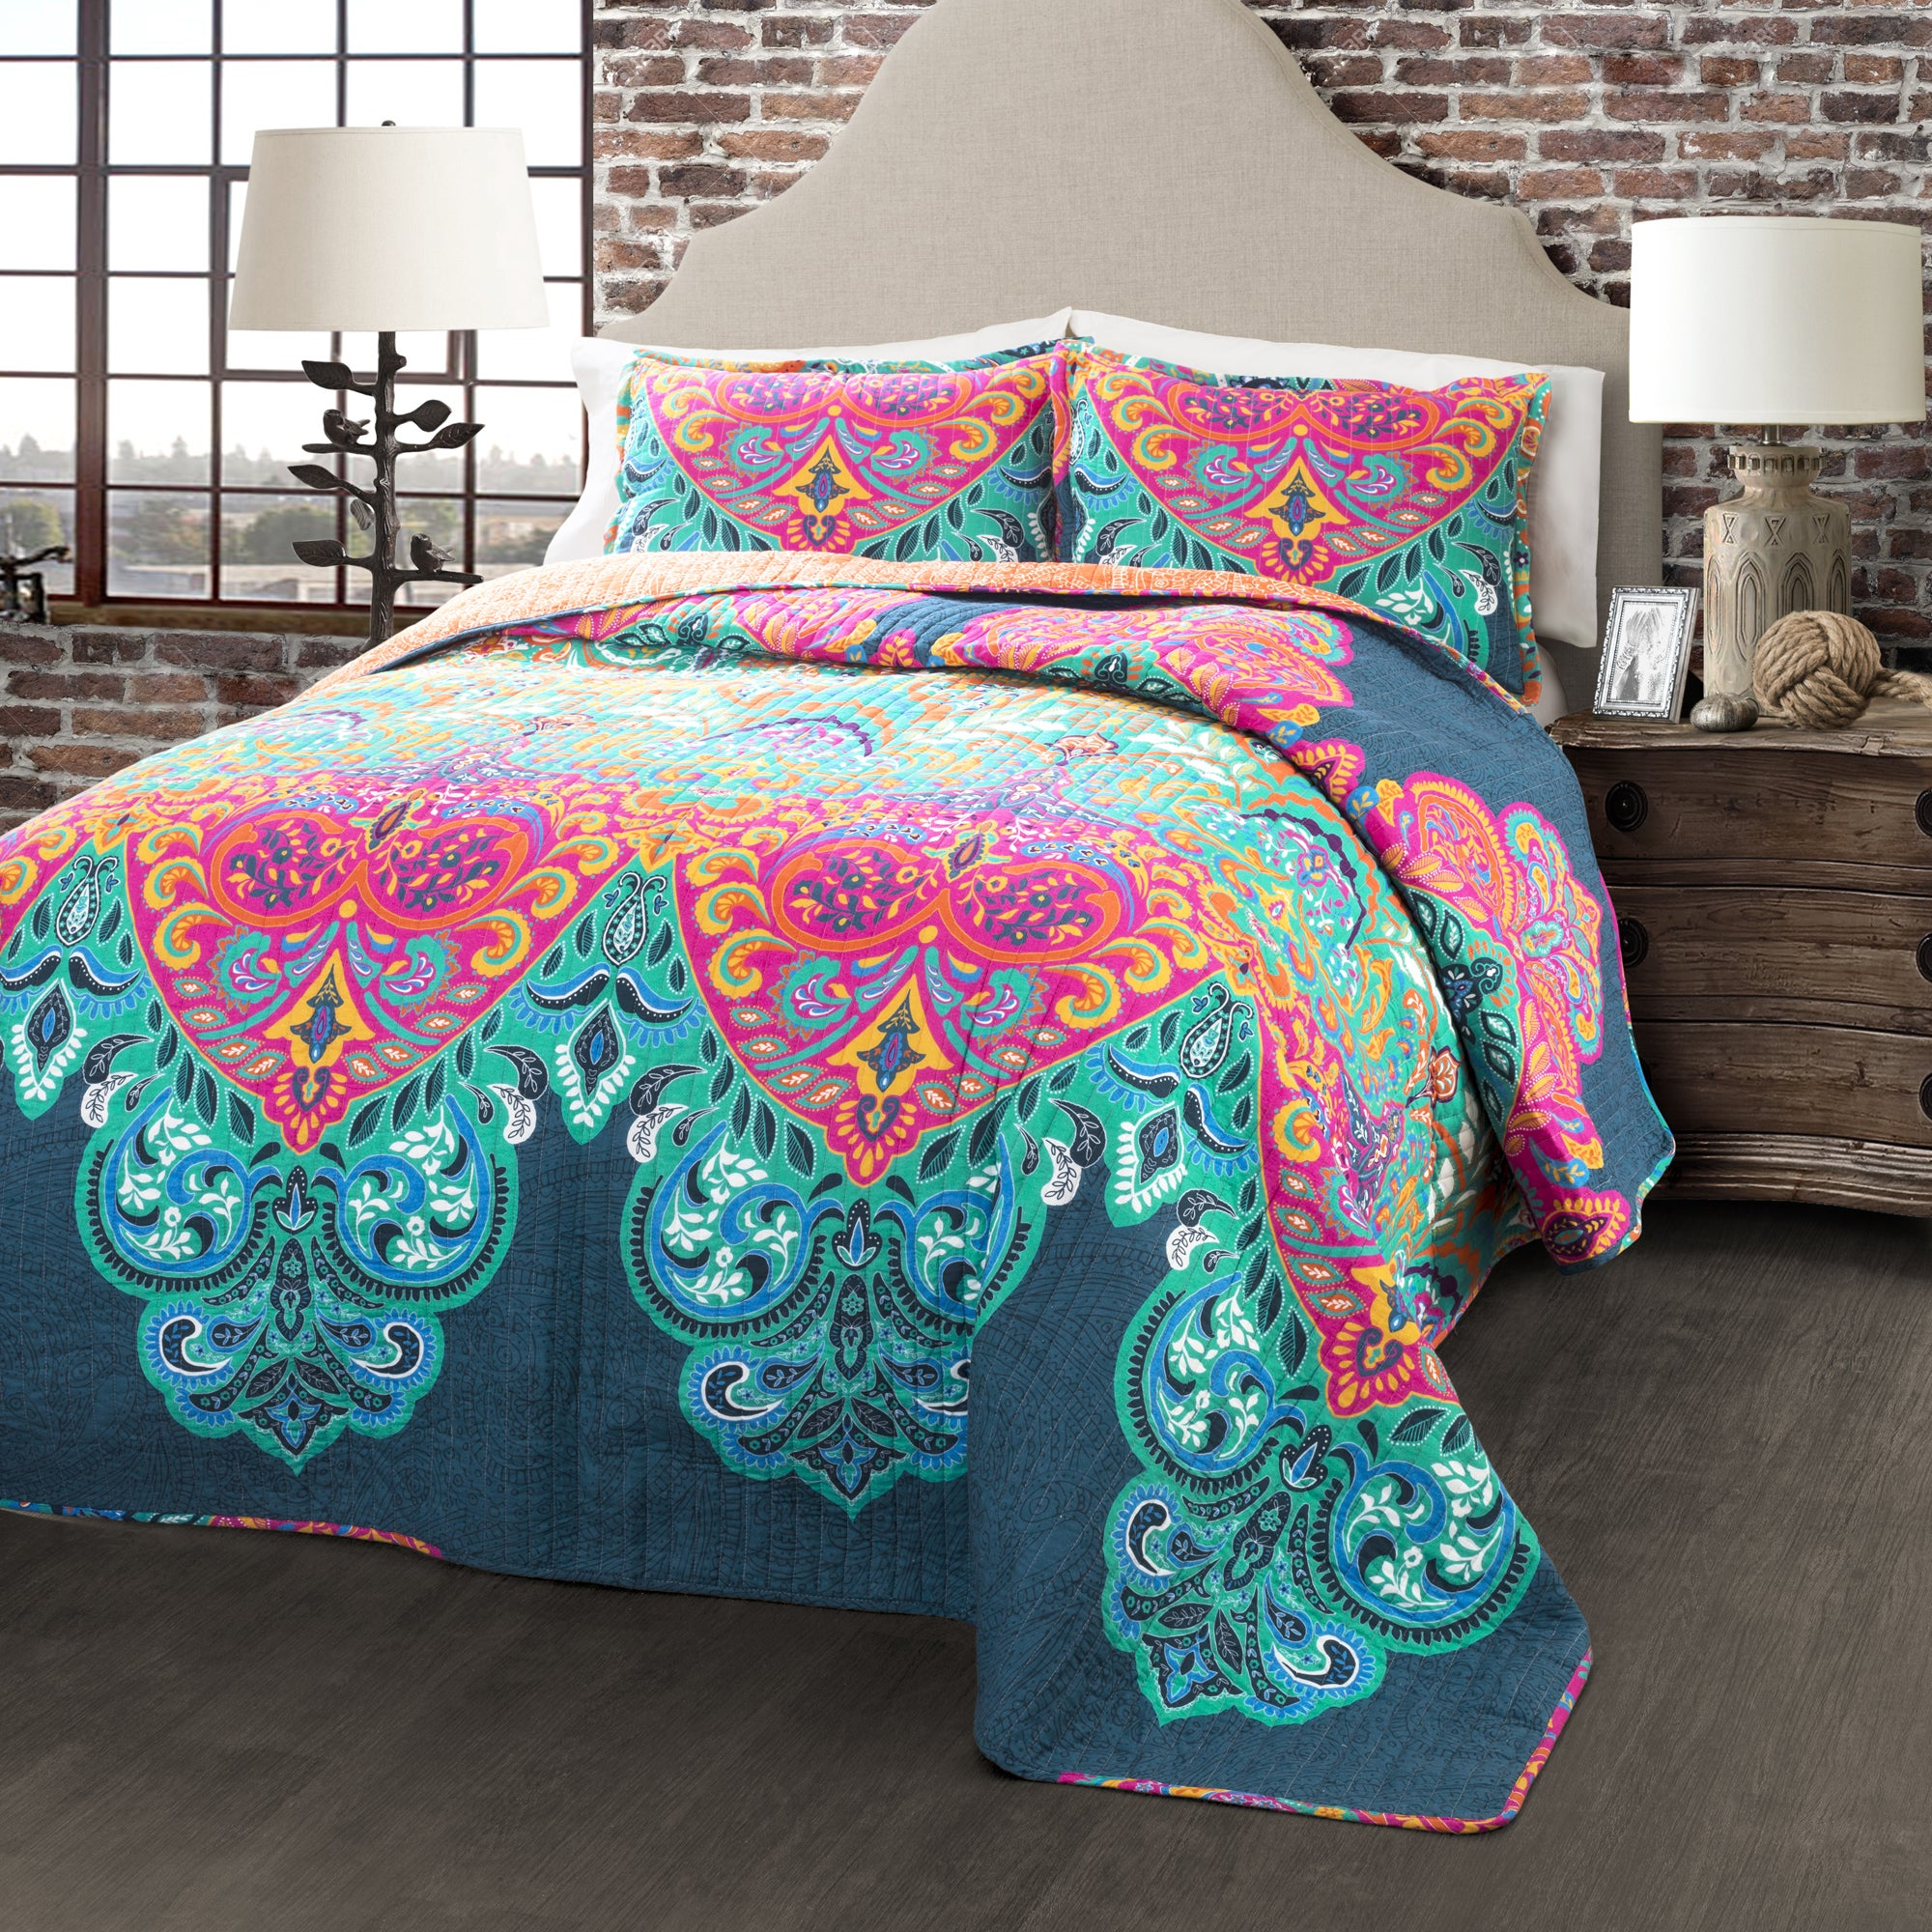 quilt king twin queen covers set medallion p sofia additional images duvet full oriental sophia floral bedding gl boho